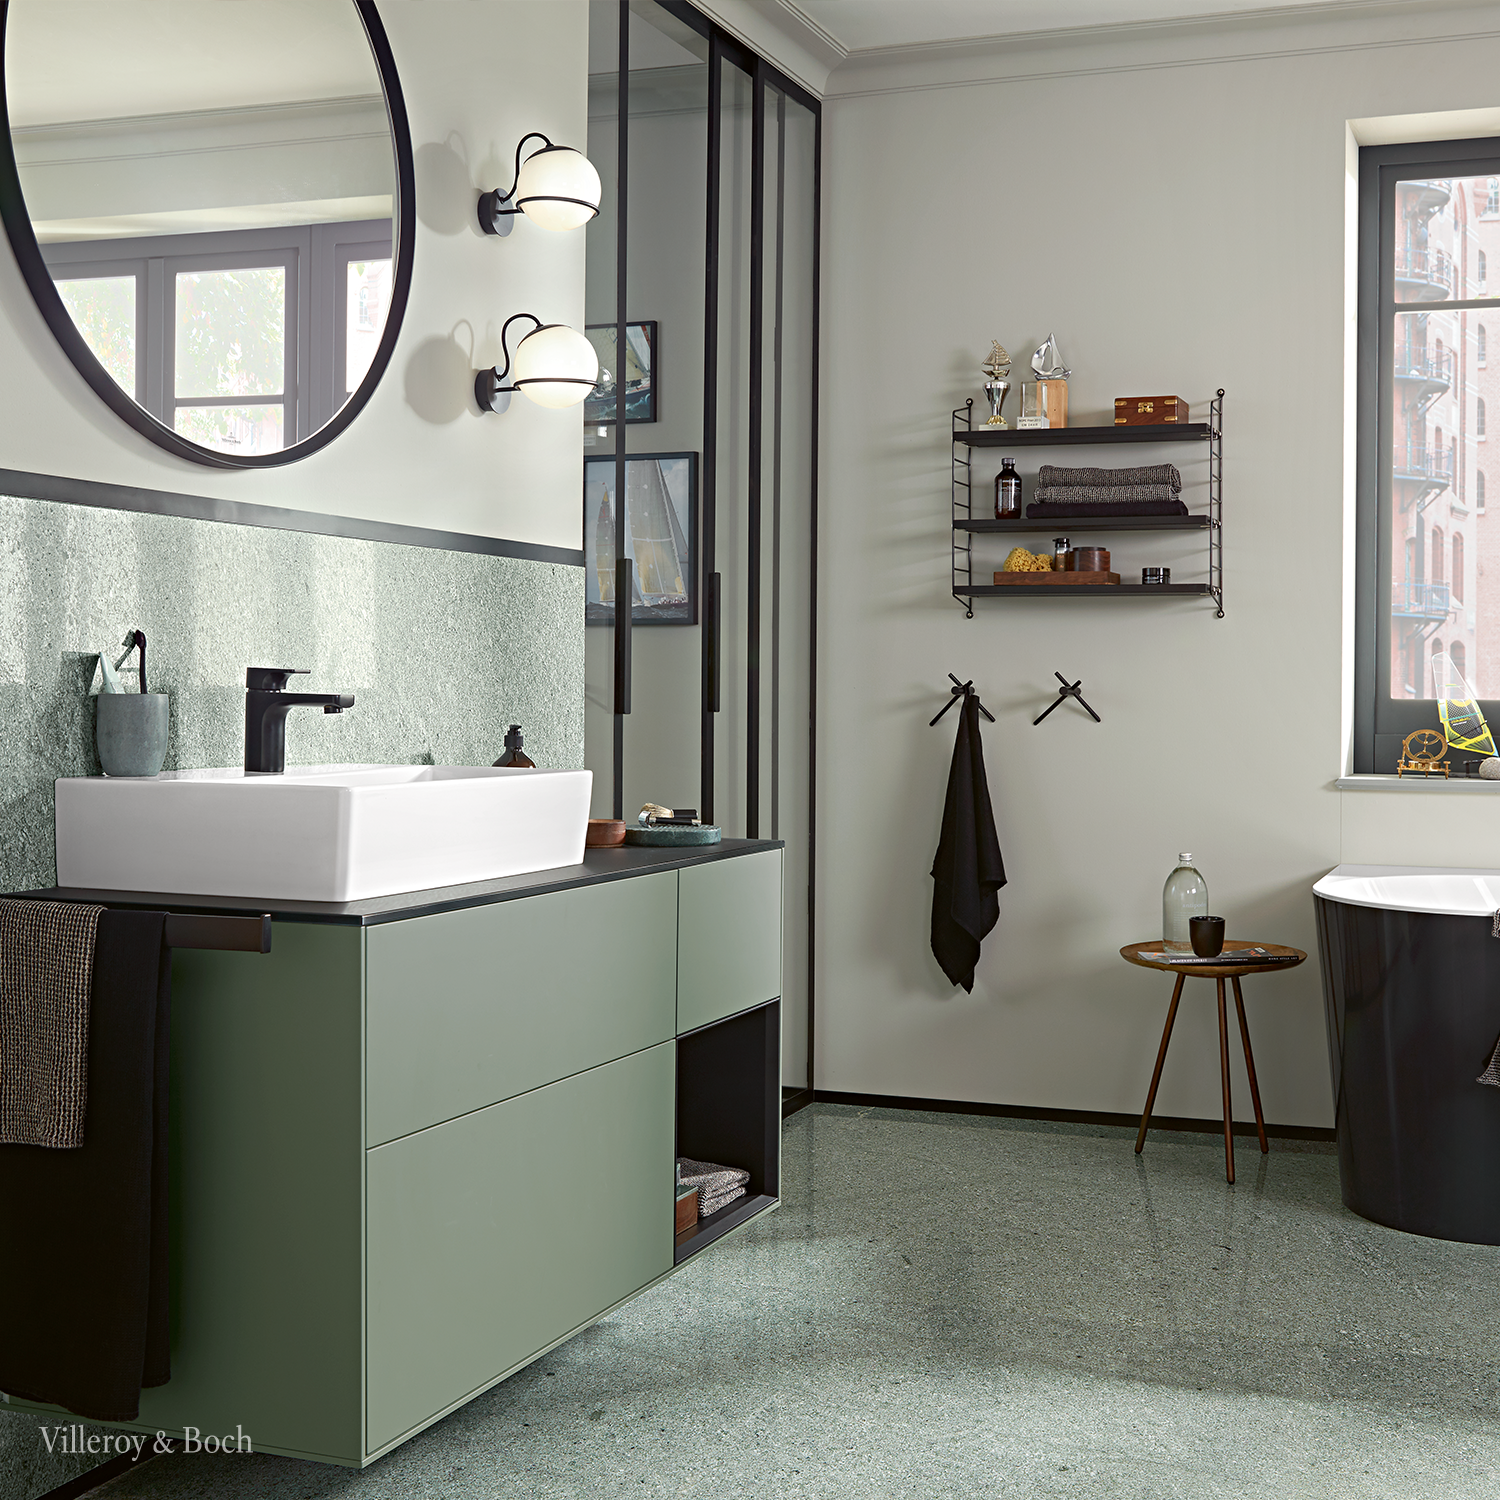 Give You Bathroom An Interior Design Update With An Elegant And Reduced Green And Olive Colour C In 2020 Badezimmer Grun Badezimmer Innenausstattung Badezimmer Design